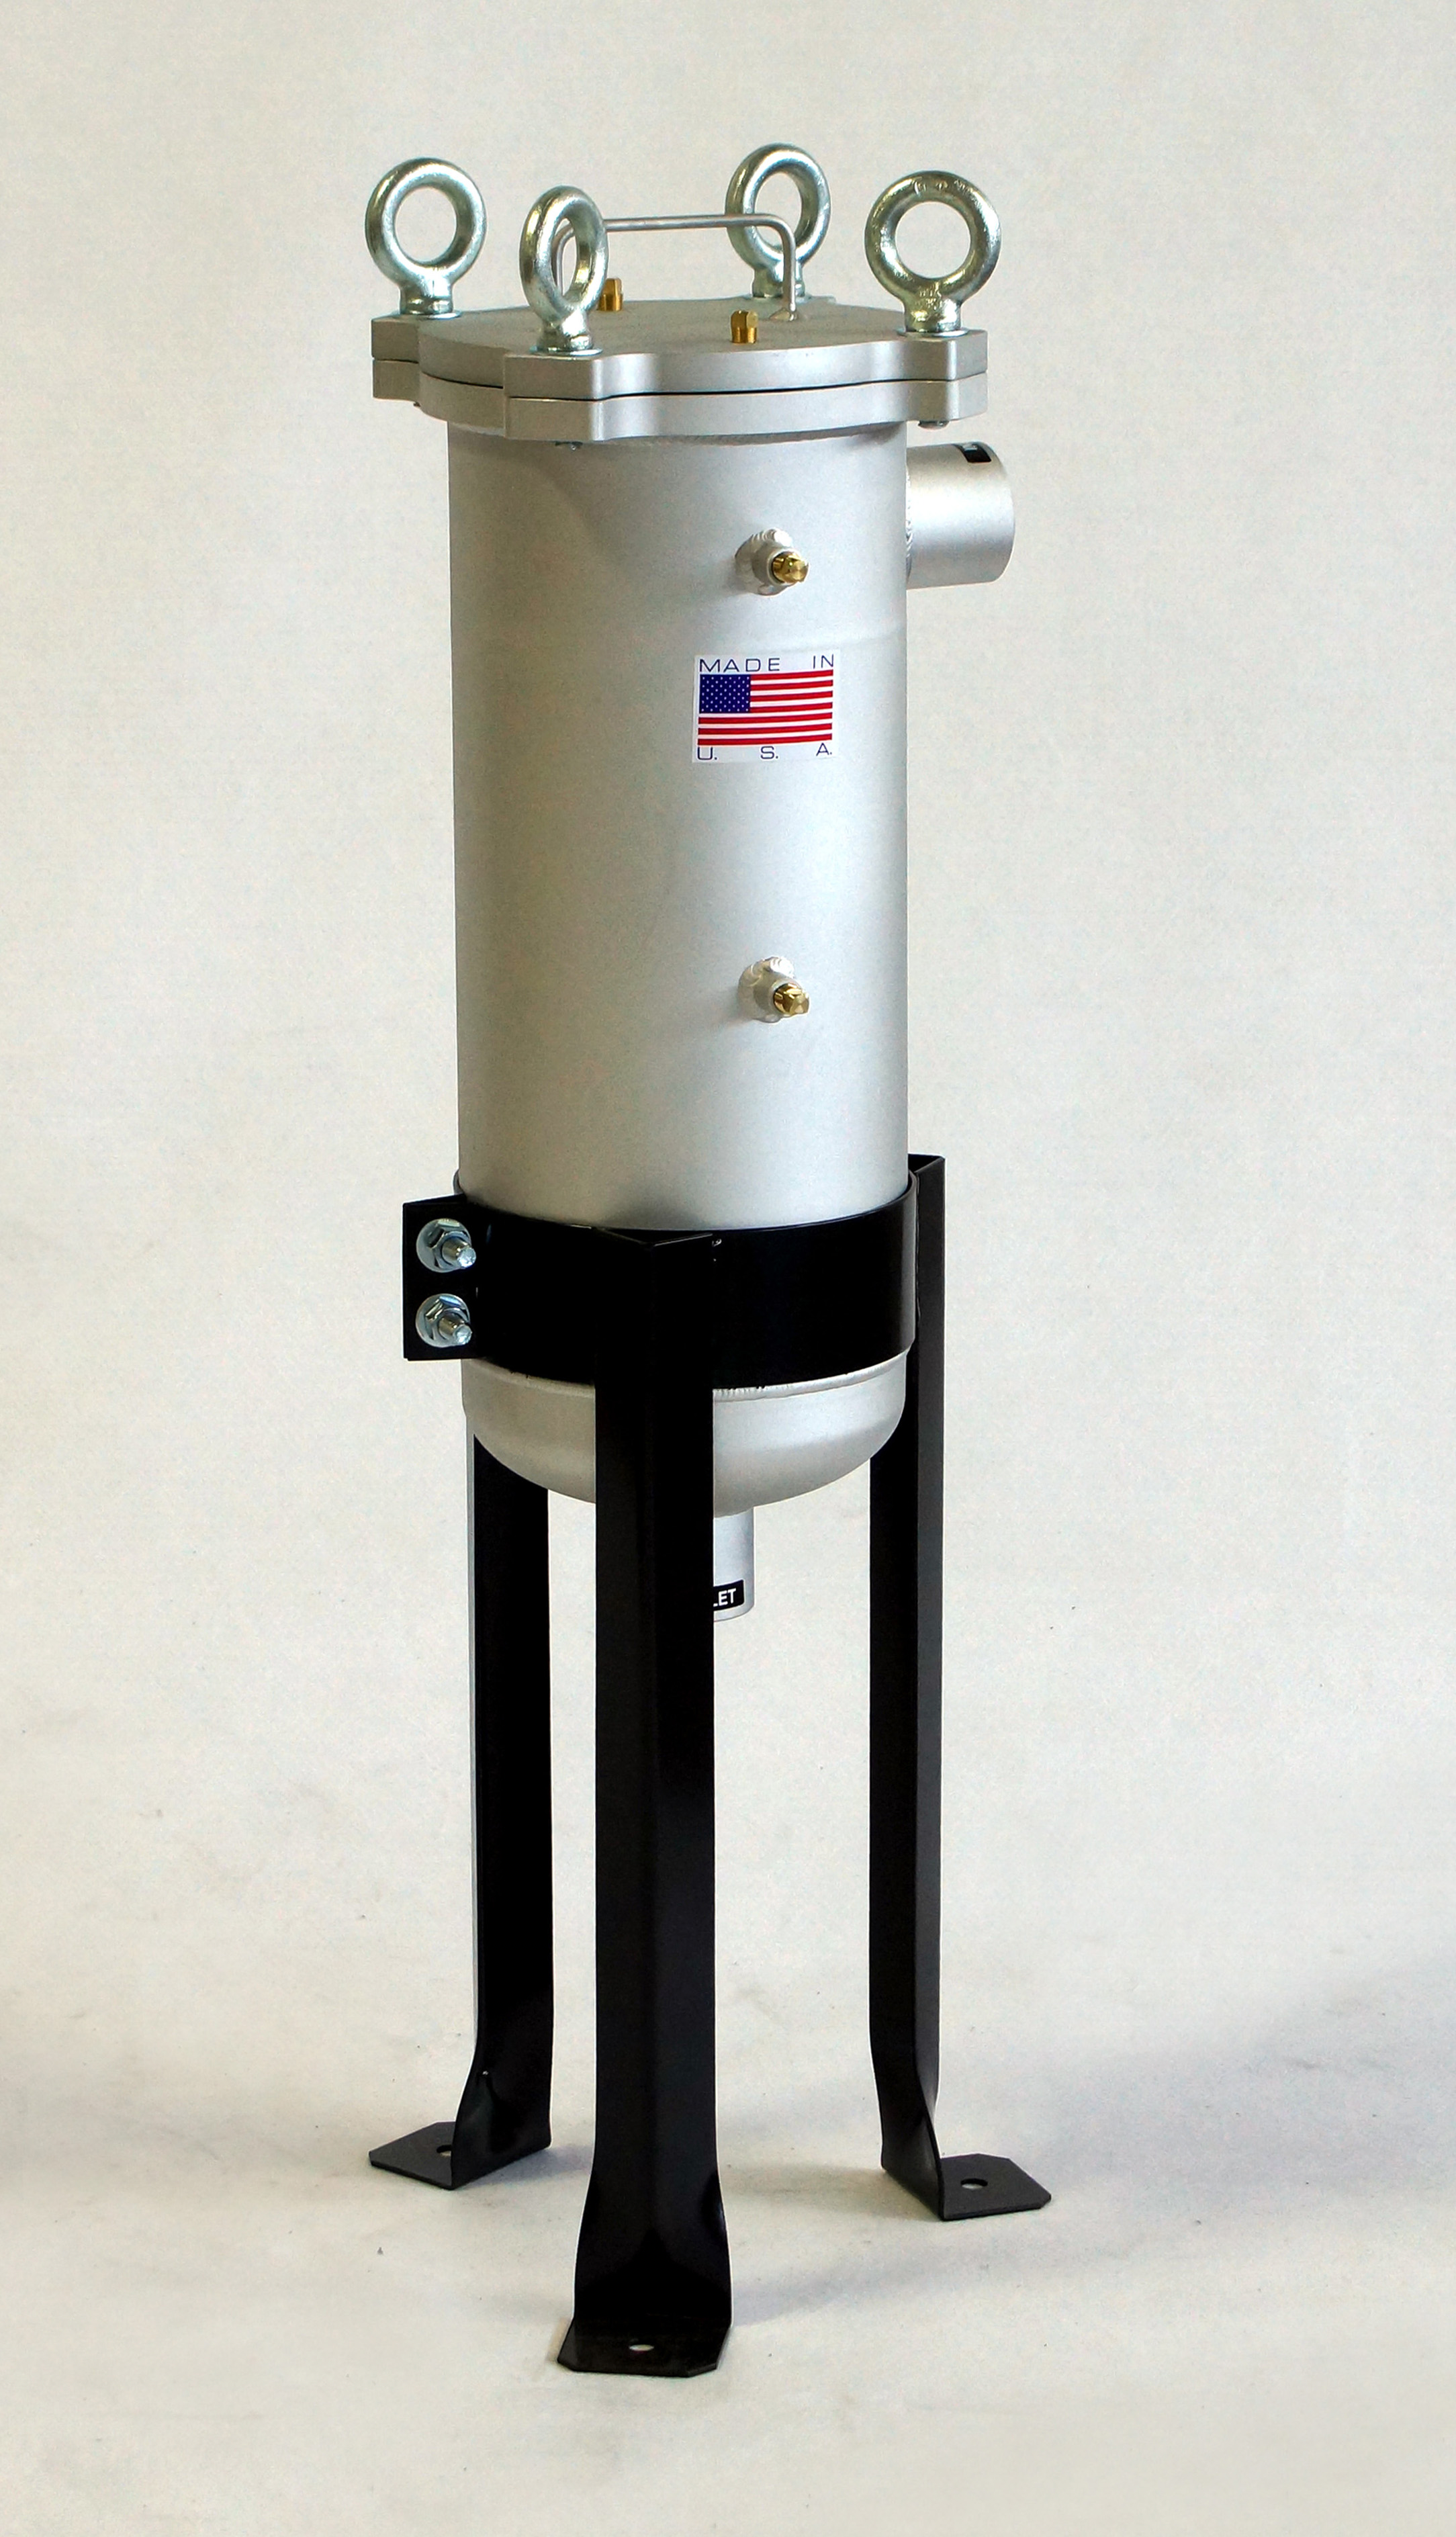 Compressed Air Piping >> Filter Vessels - Industrial and Chemical Use | Great Lakes Filters